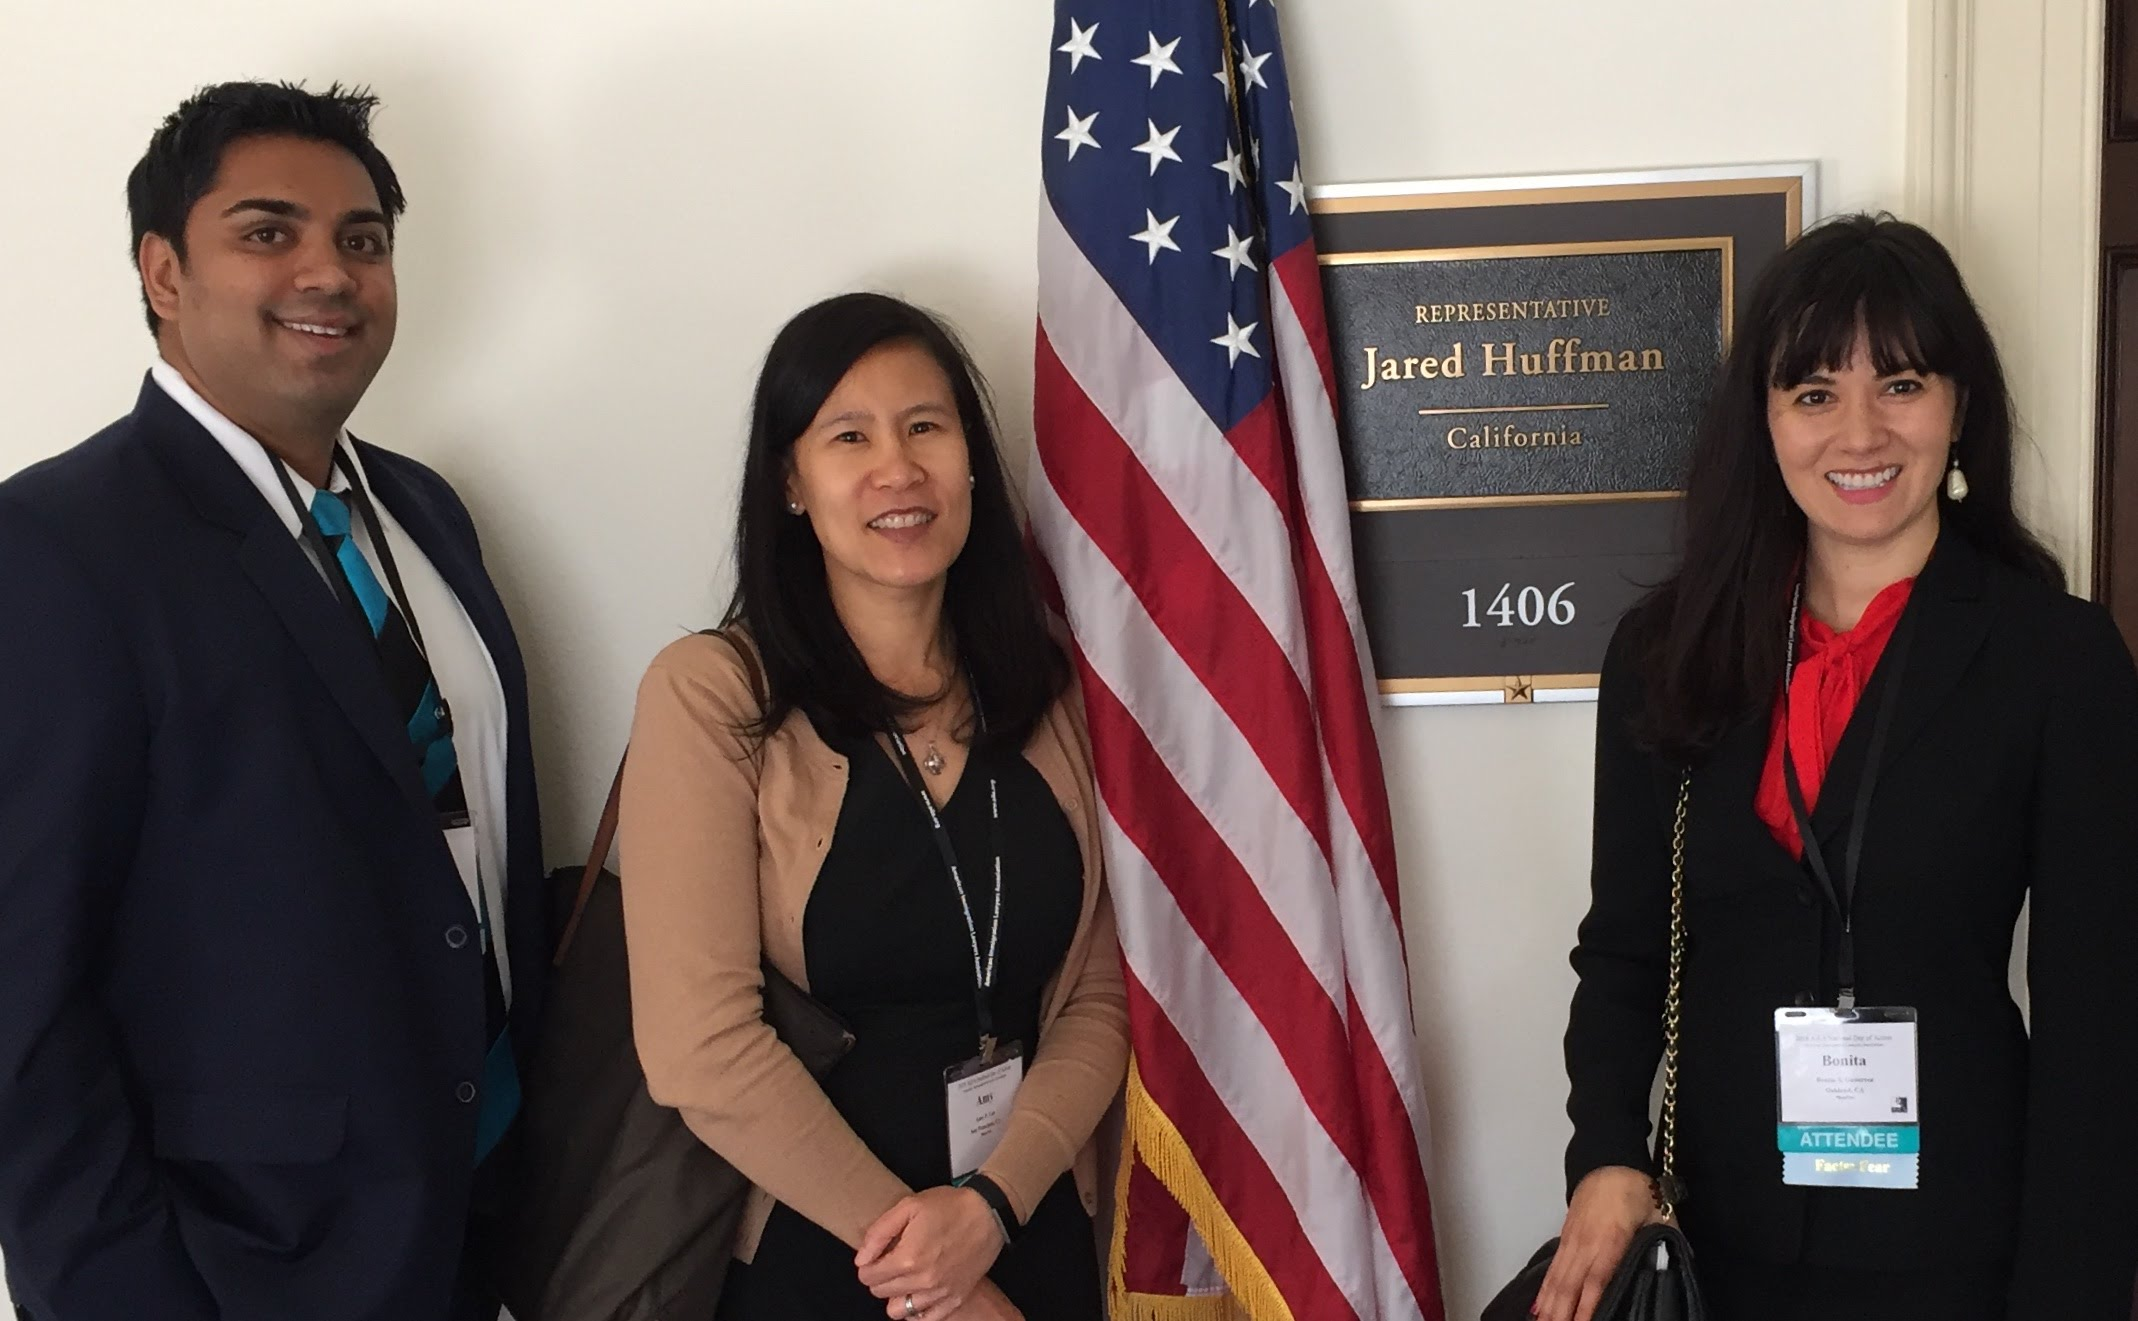 Amy Lee (middle) in Washington D.C. with fellow immigration lawyers after meeting with Jared Huffman's office (CA 2nd District).